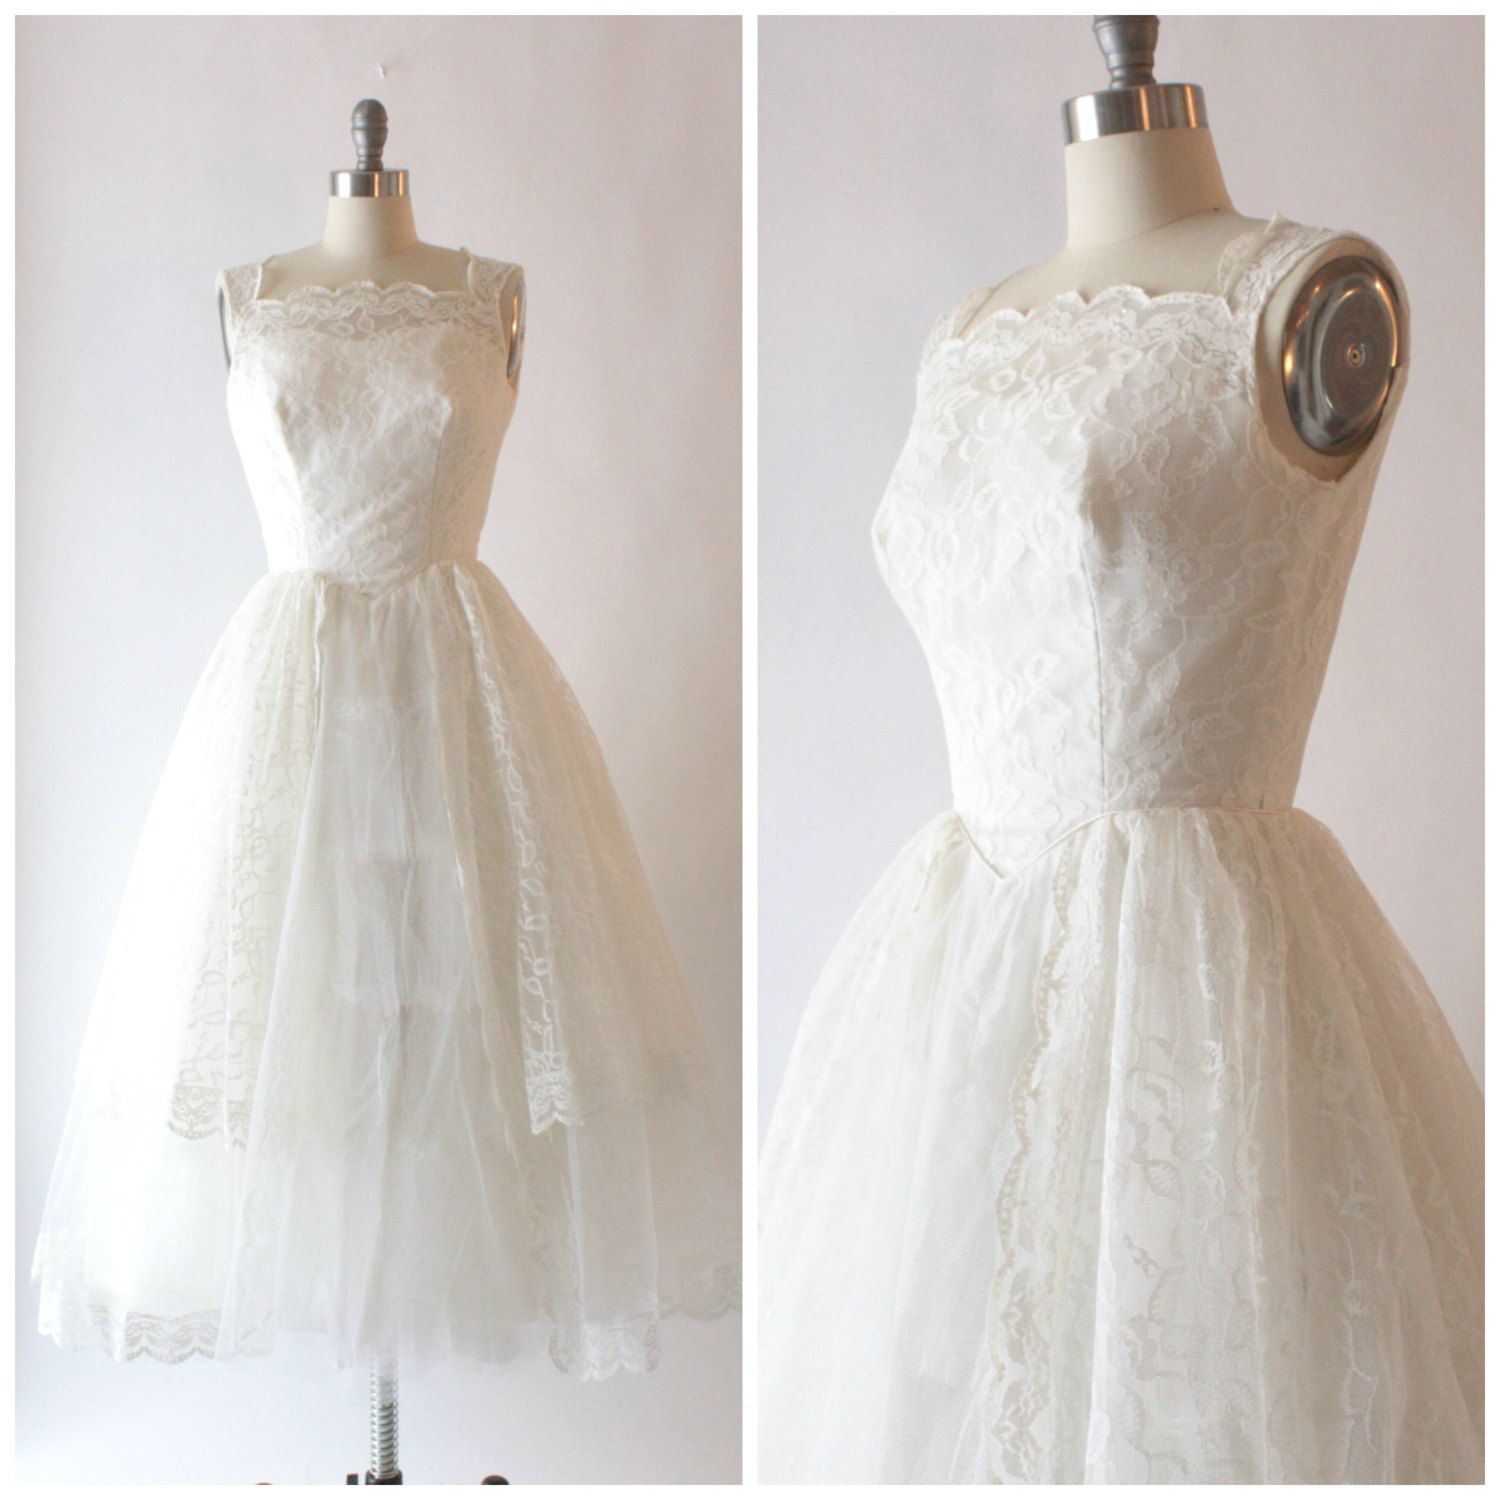 Betsey johnson wedding dresses  s chantilly lace and tulle tea length white by SchoolofVintage